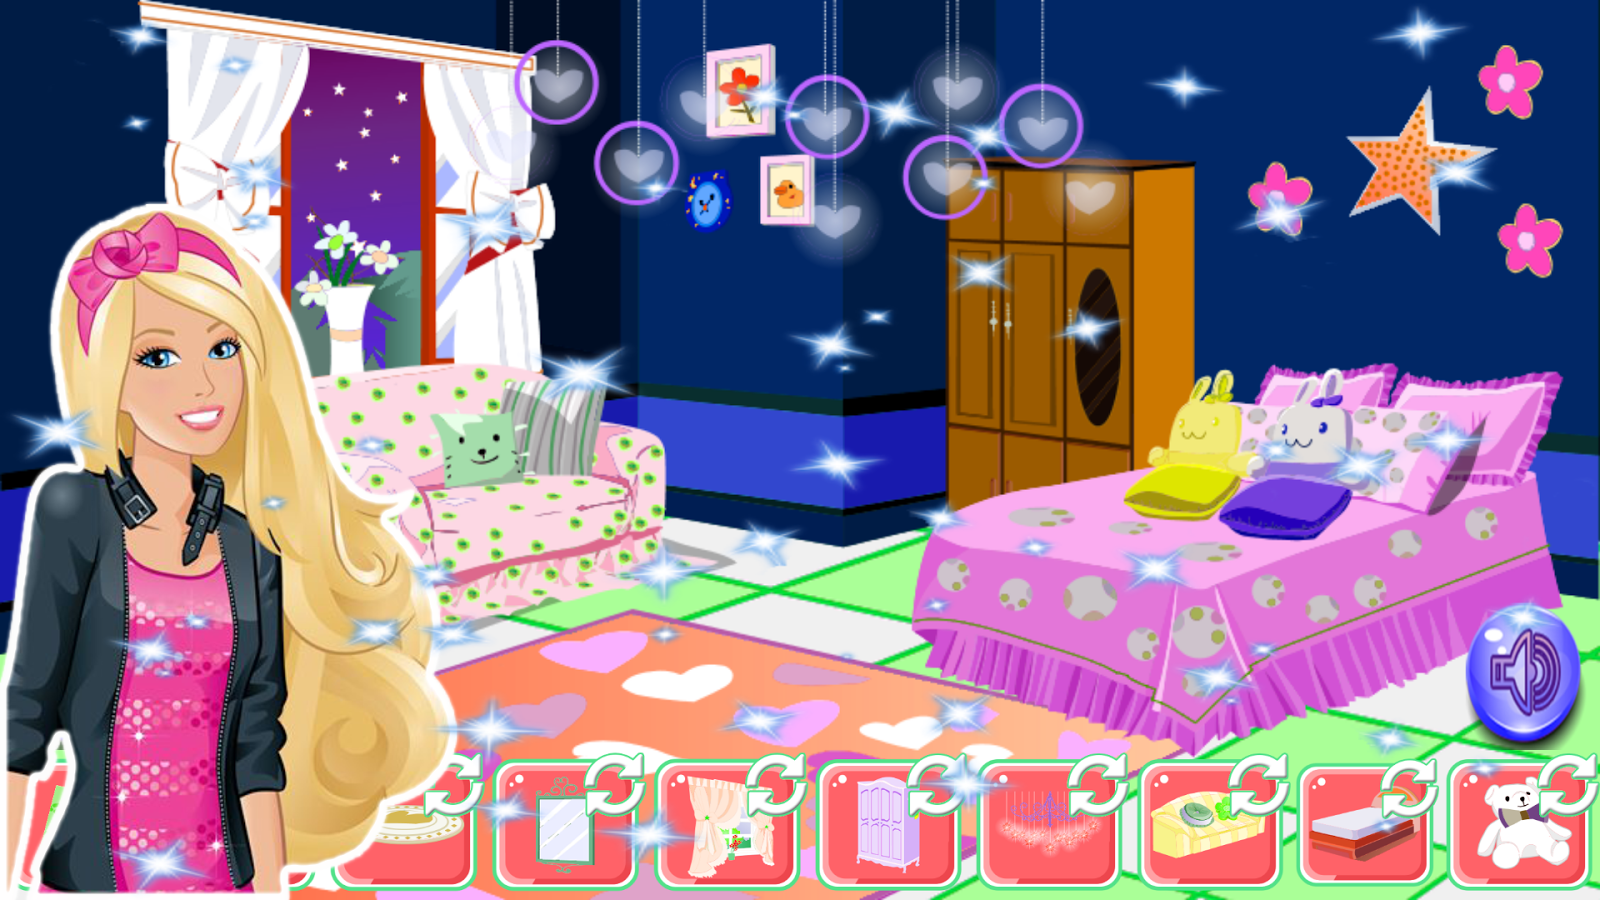 Home d coration girls games android apps on google play for Baby room decoration games free online